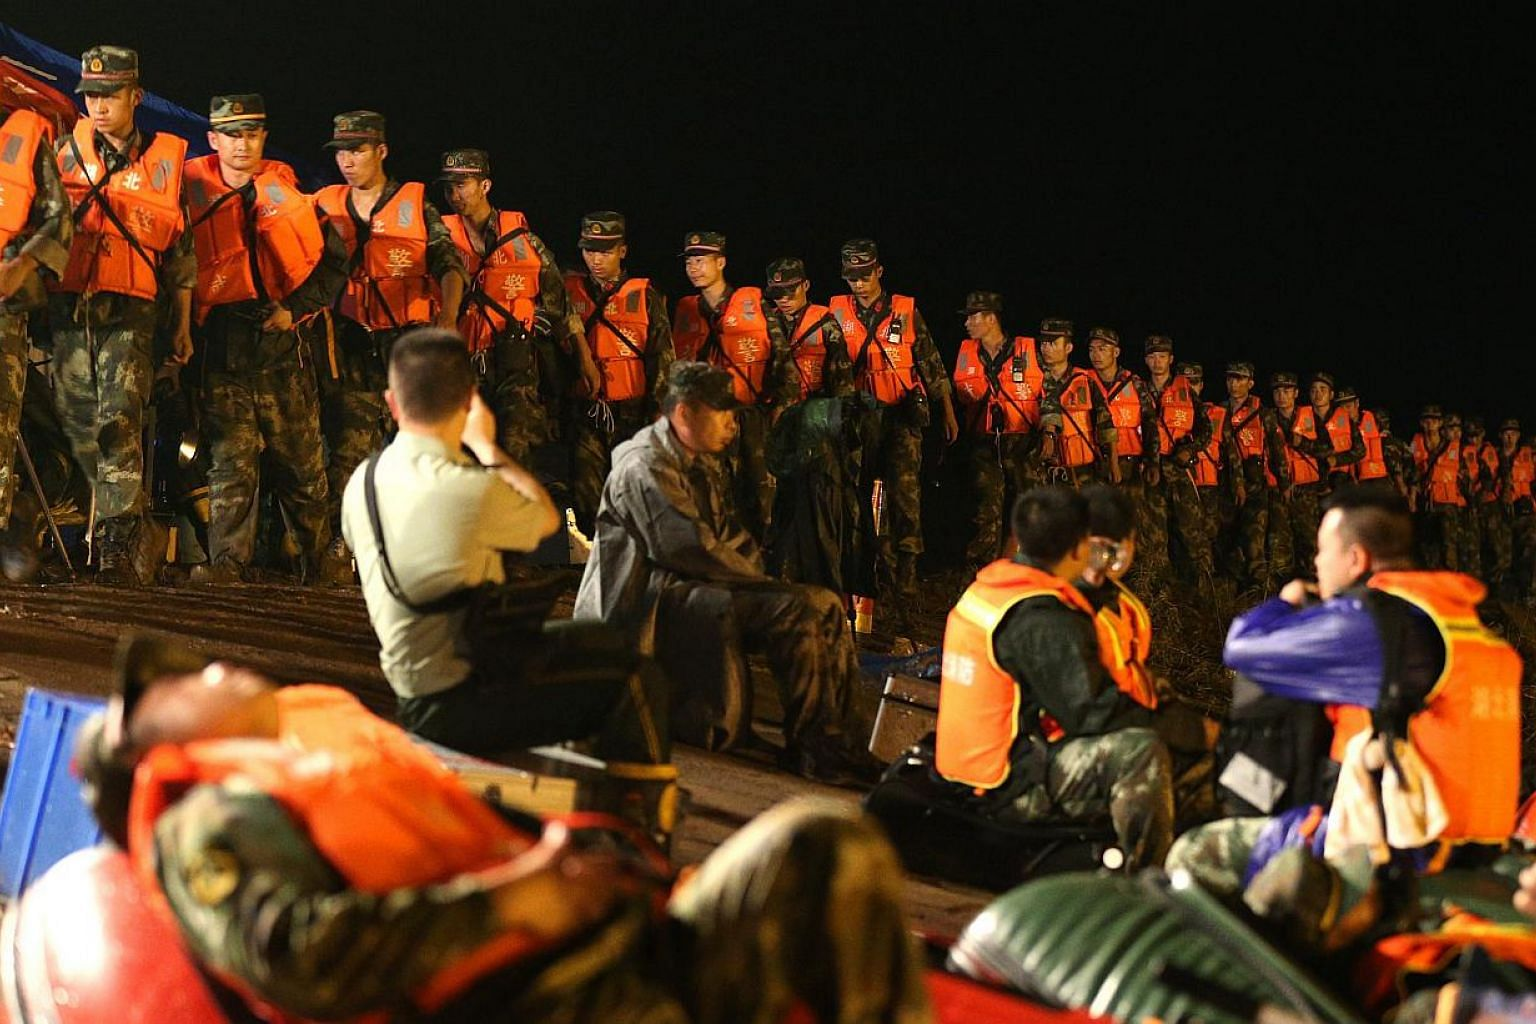 Rescuers walk in a line along the bank side of the Yangtze River as they search for missing passengers of a capsized tourist ship in Jianli, Hubei province, China, on June 2, 2015. -- PHOTO: EPA